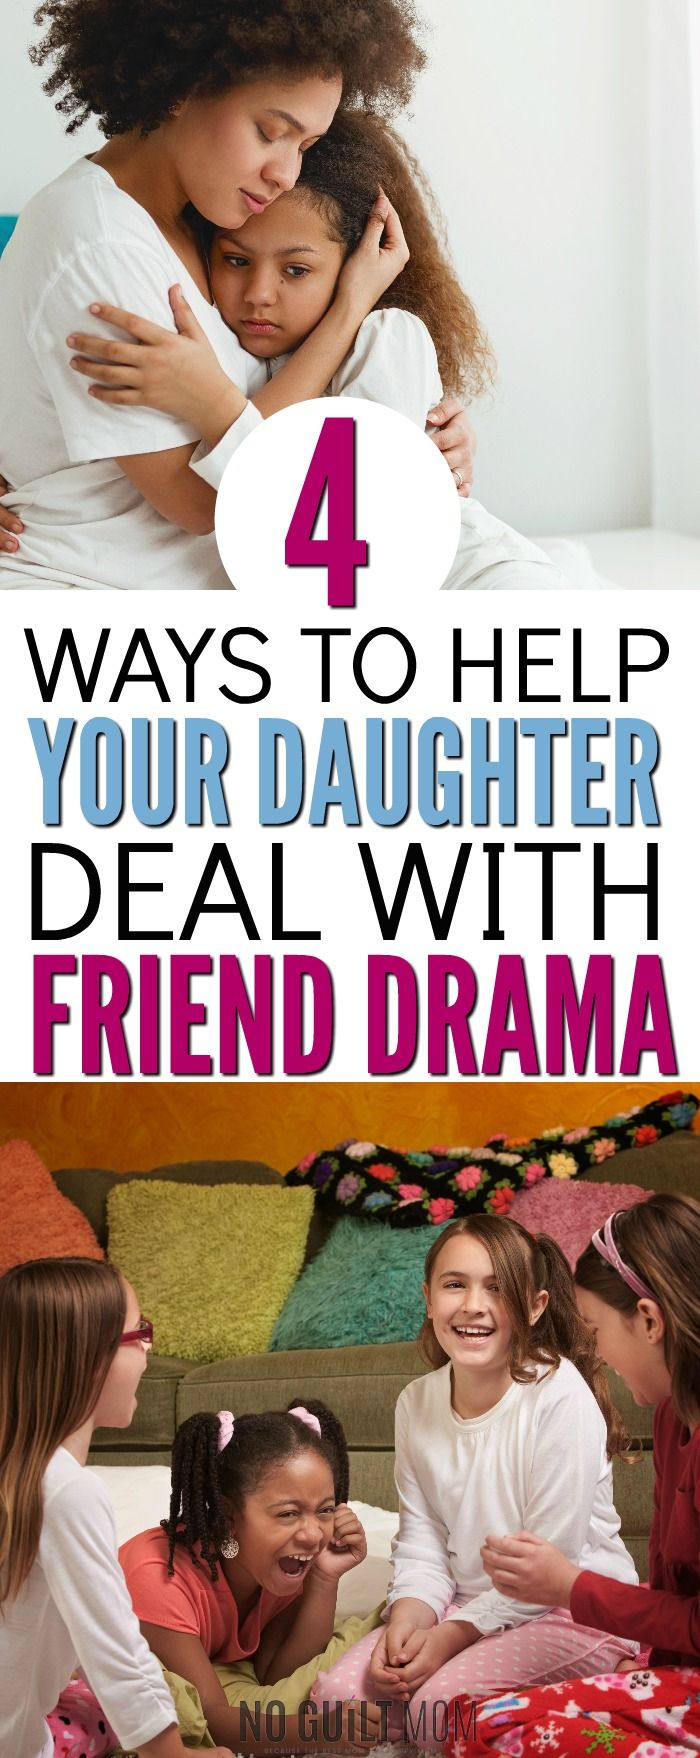 Girl drama! Ack, I'm tearing my hair out with this girl drama. All these arguments with good friends seem silly, but this showed me how they're an opportunity. Here's excellent parenting advice on how to encourage your daughter how to have positive relationships, choose good friends and be a good friend. via @noguiltmom